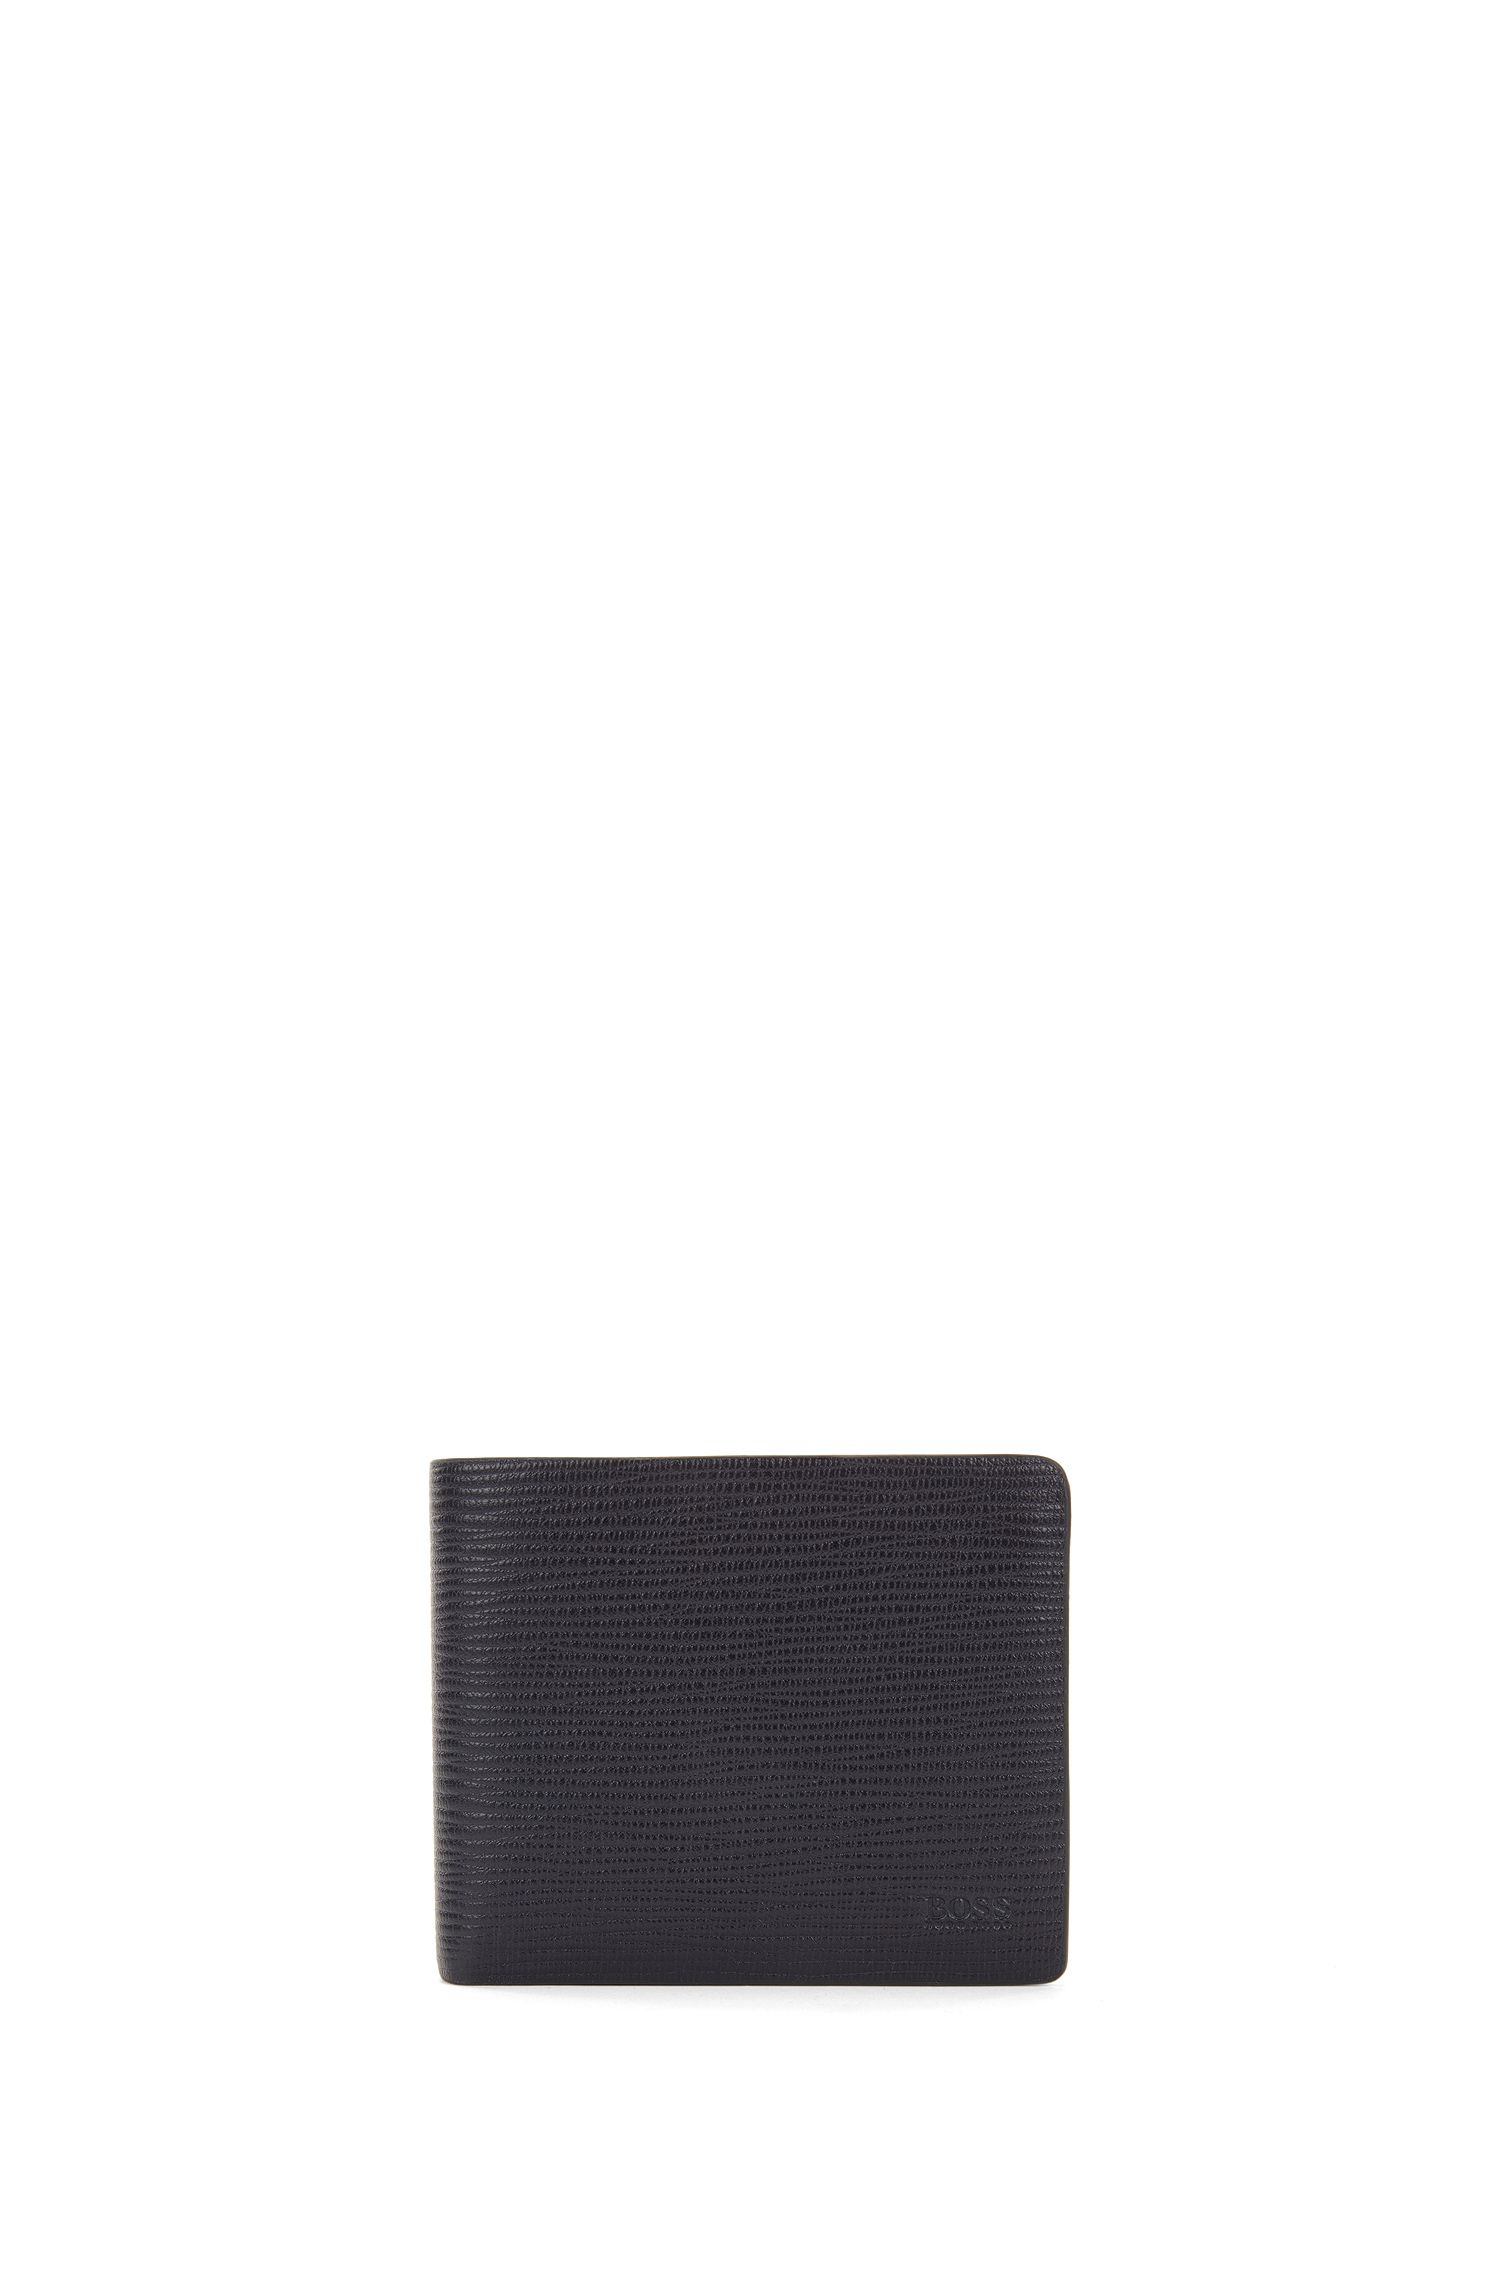 Palmellato Leather Trifold Wallet | Timeless Trifold